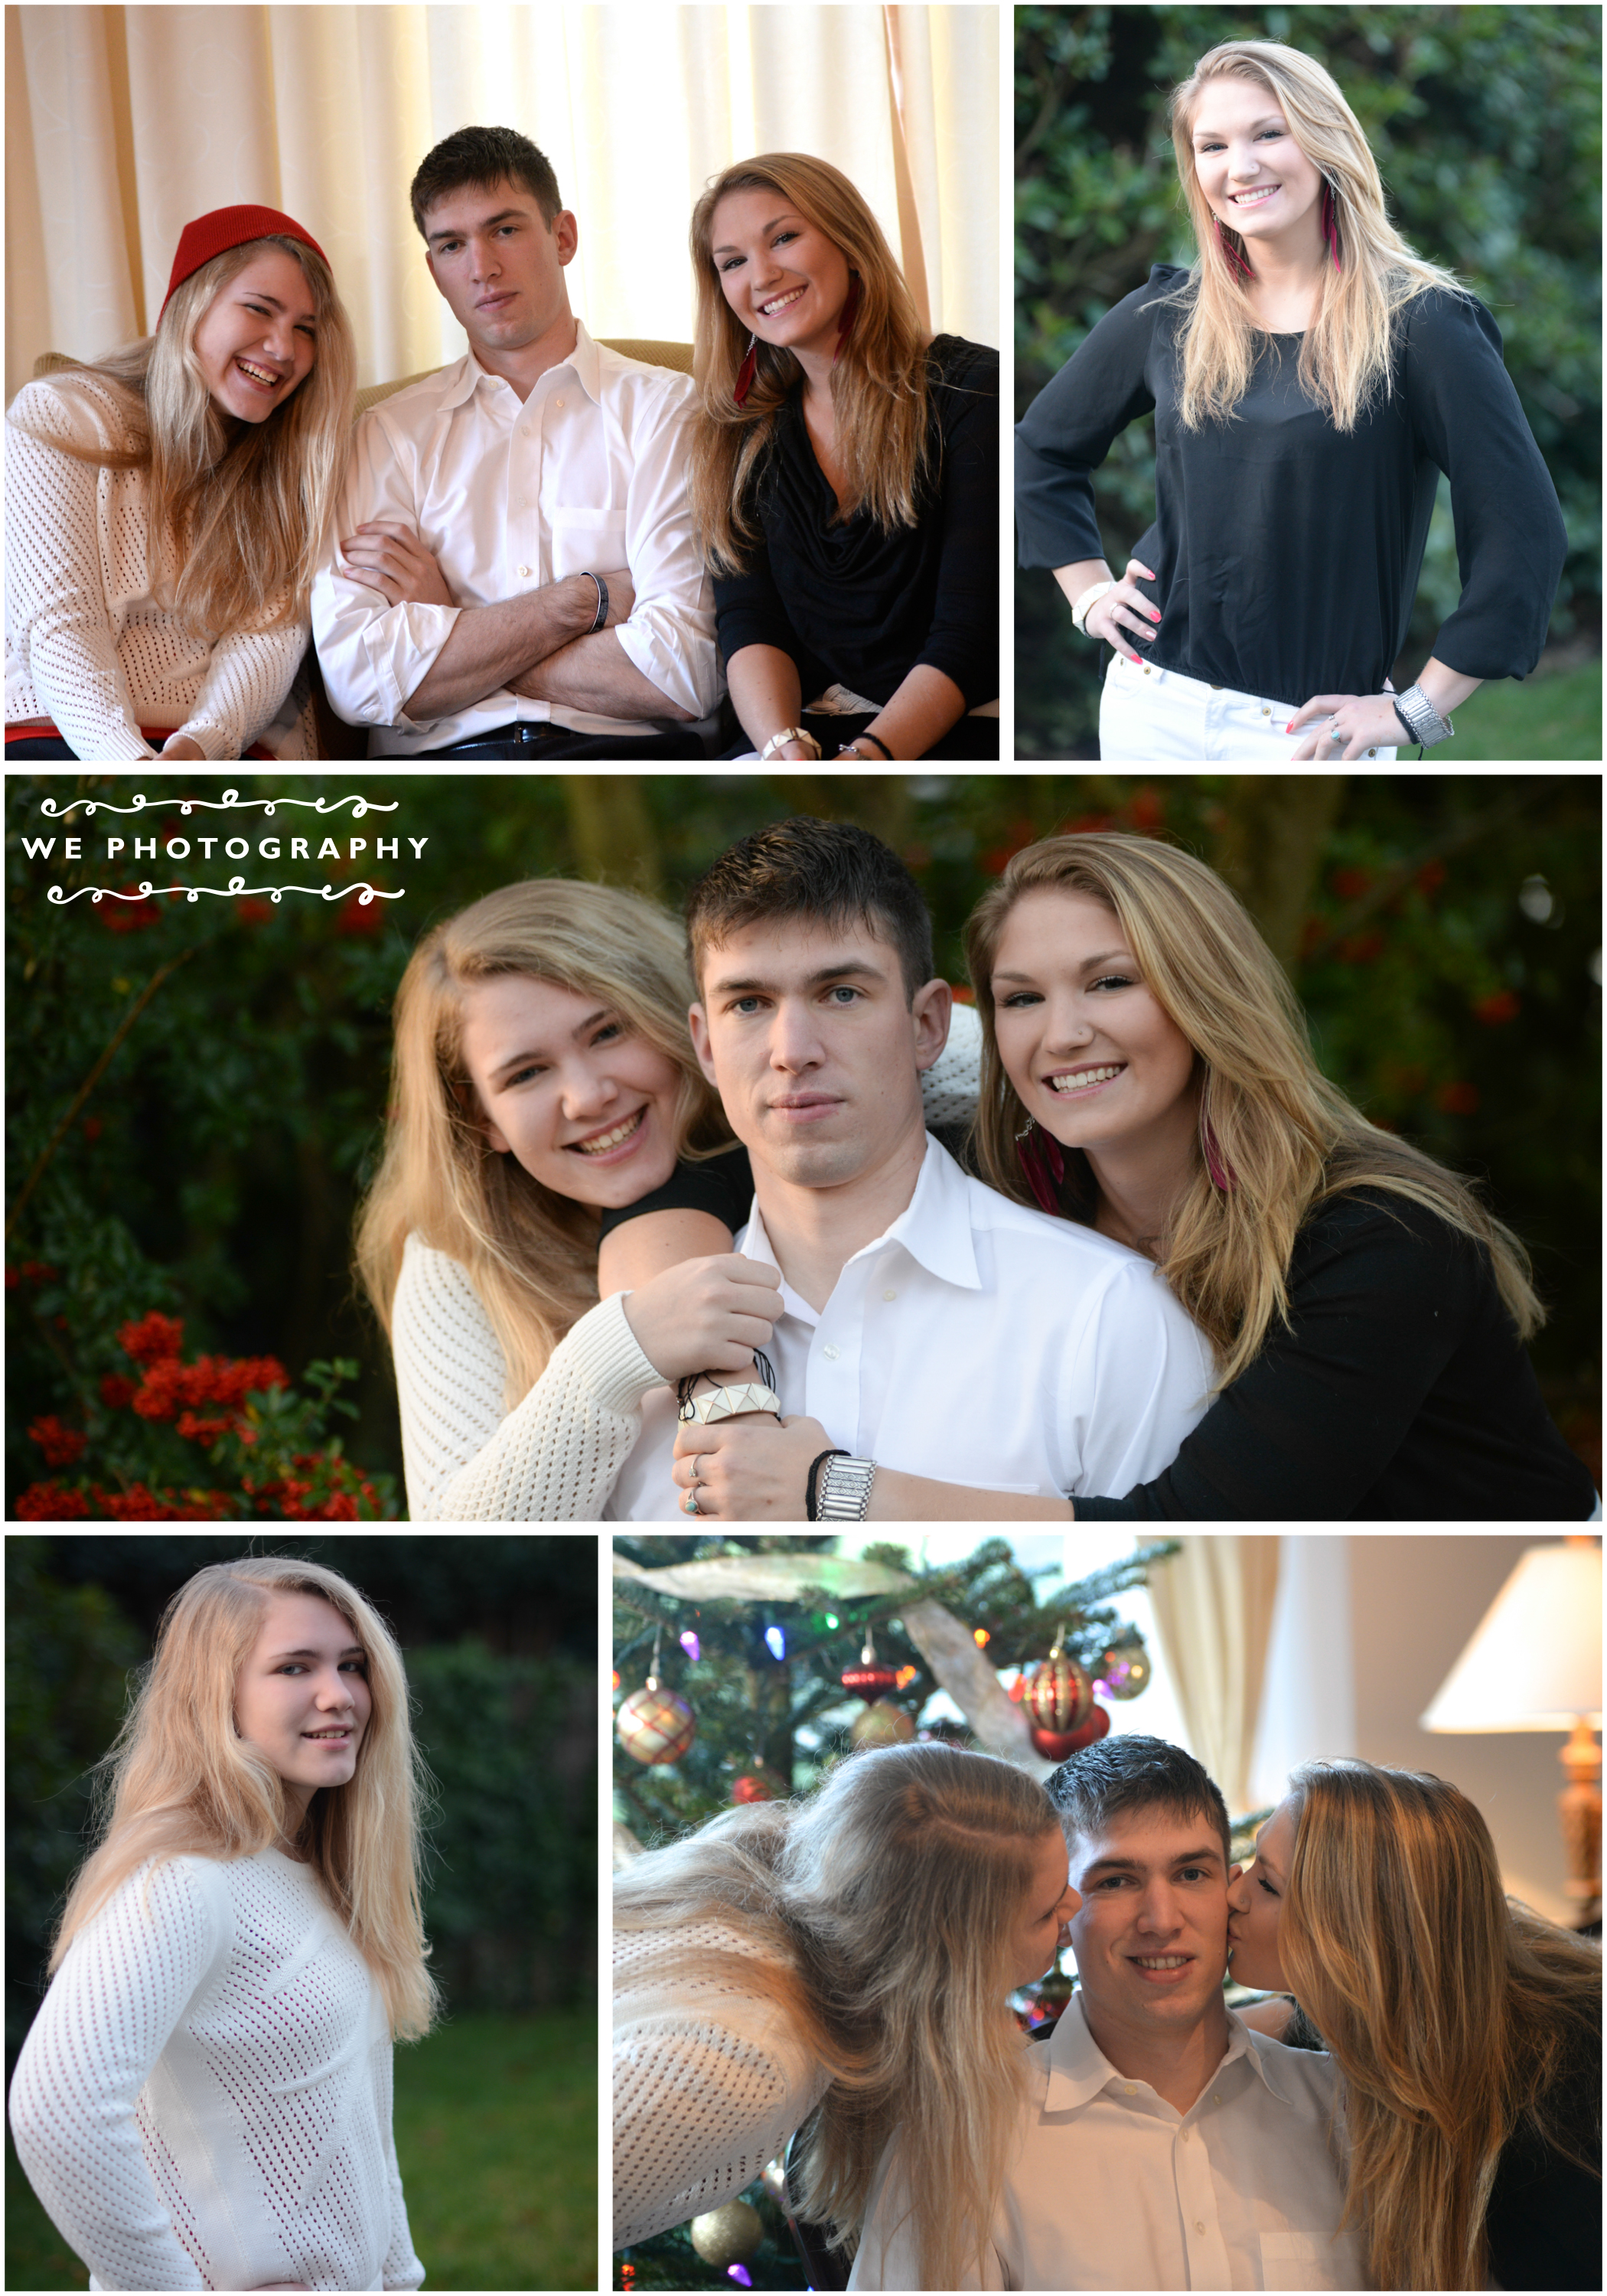 201312_Donnellycollage1.jpg